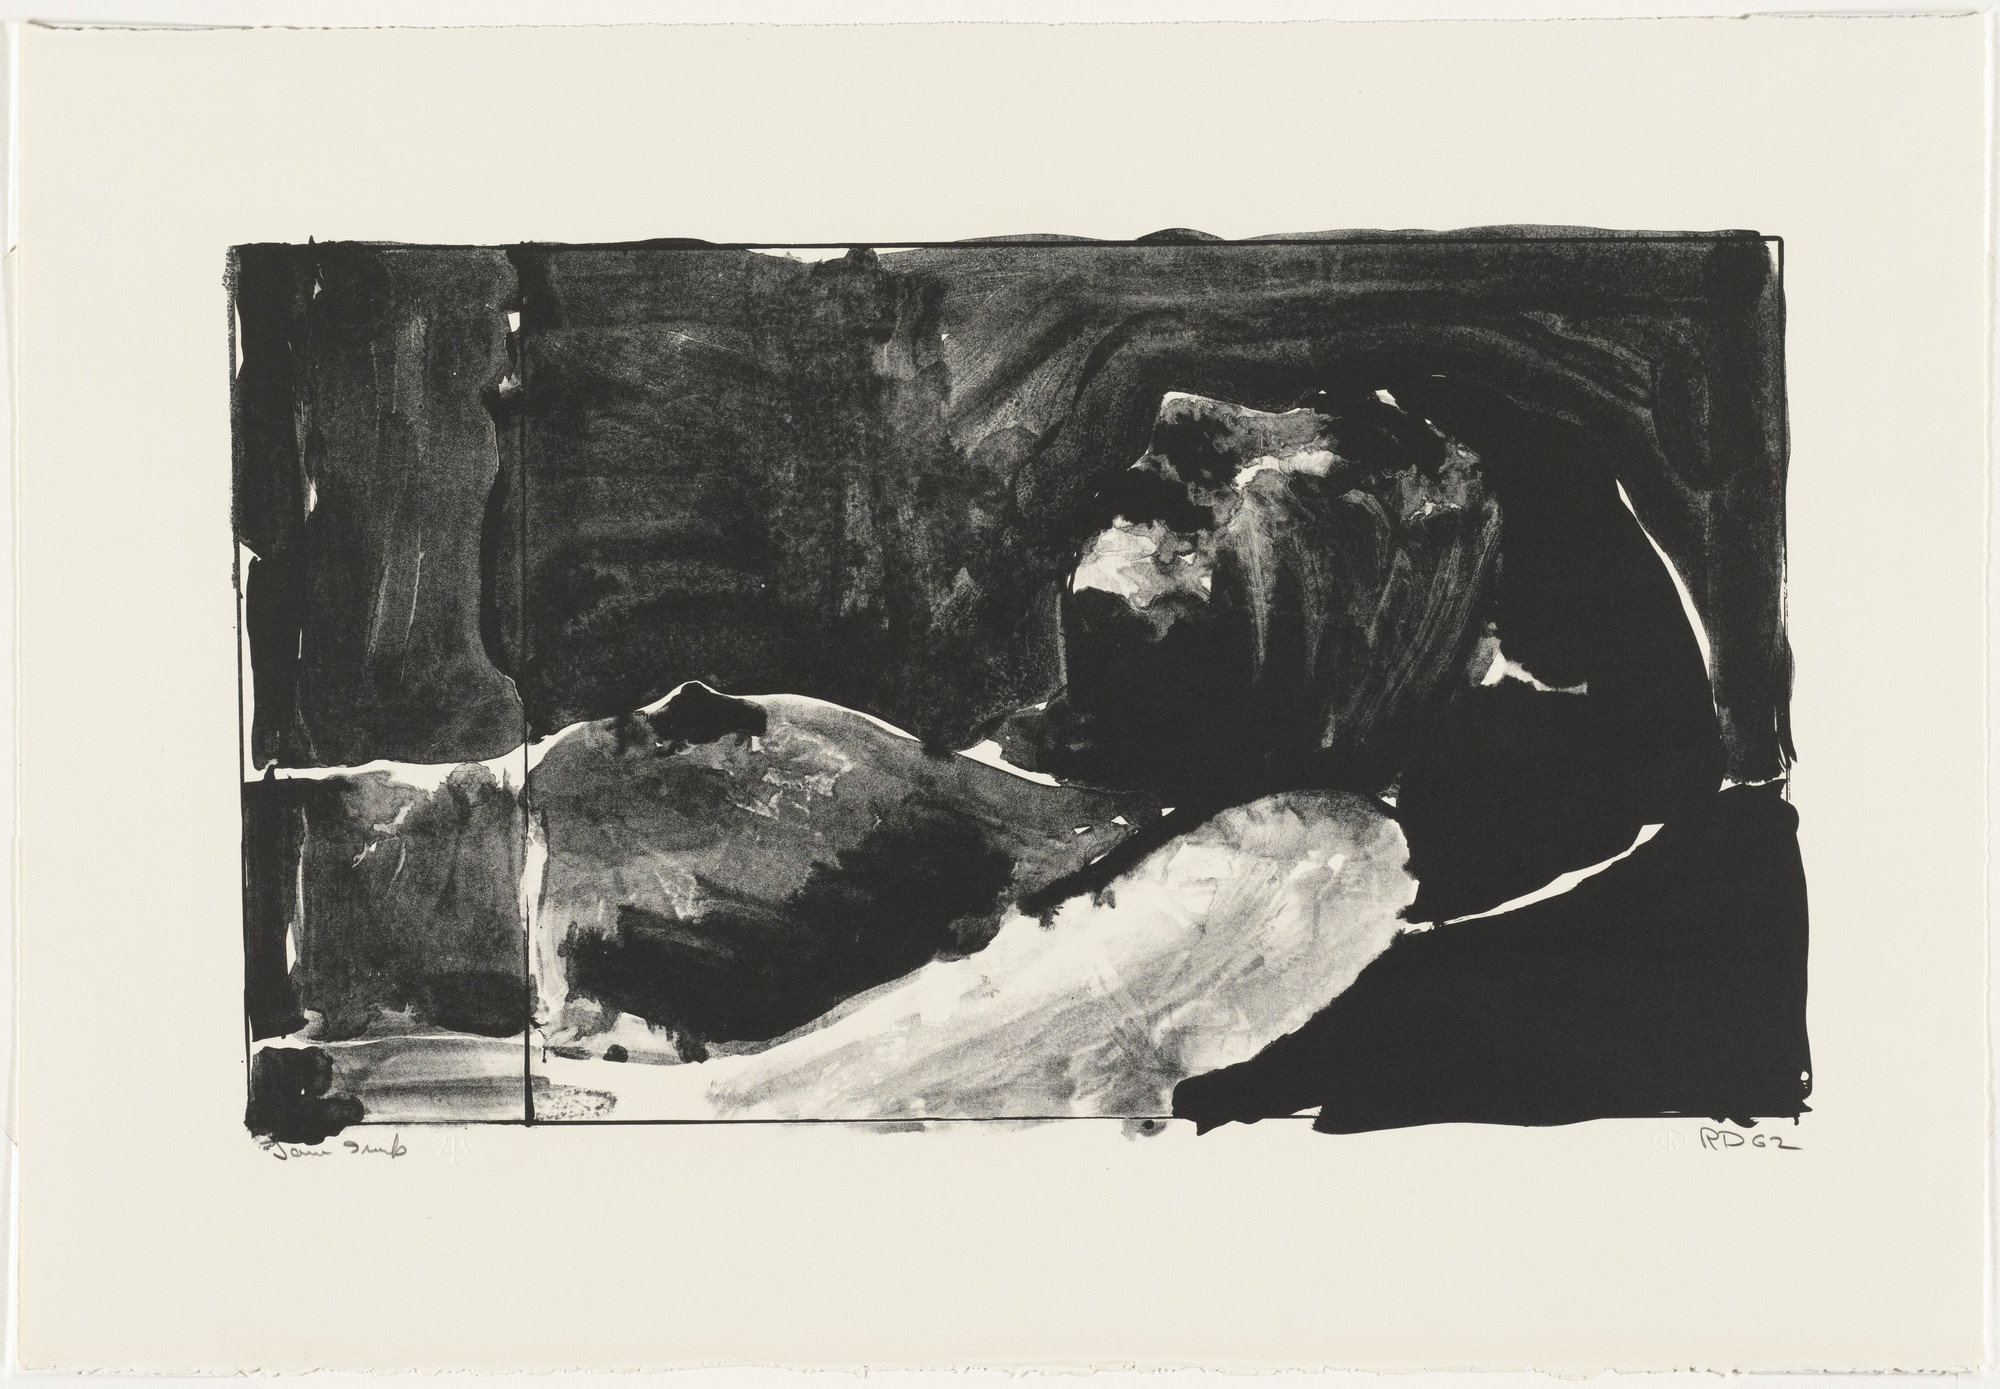 Richard Diebenkorn. Reclining Woman. (April 30-May 1) 1962